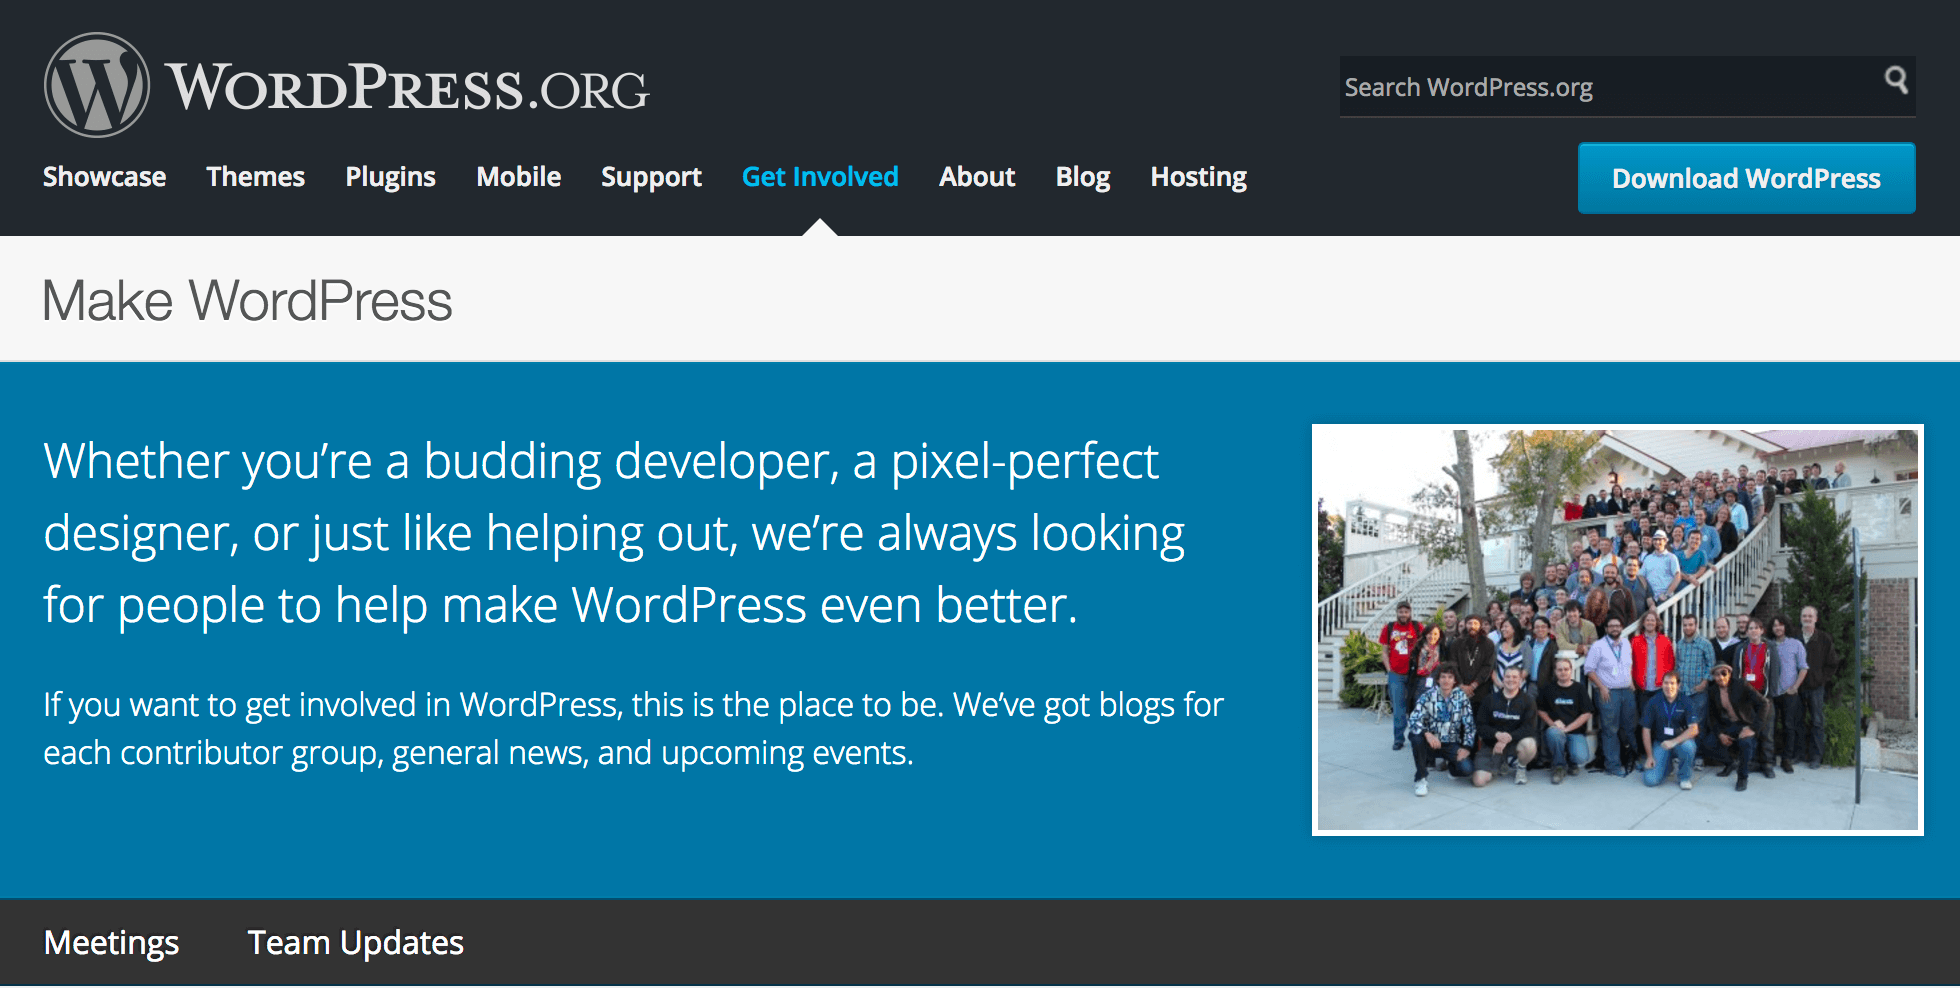 Make WordPress